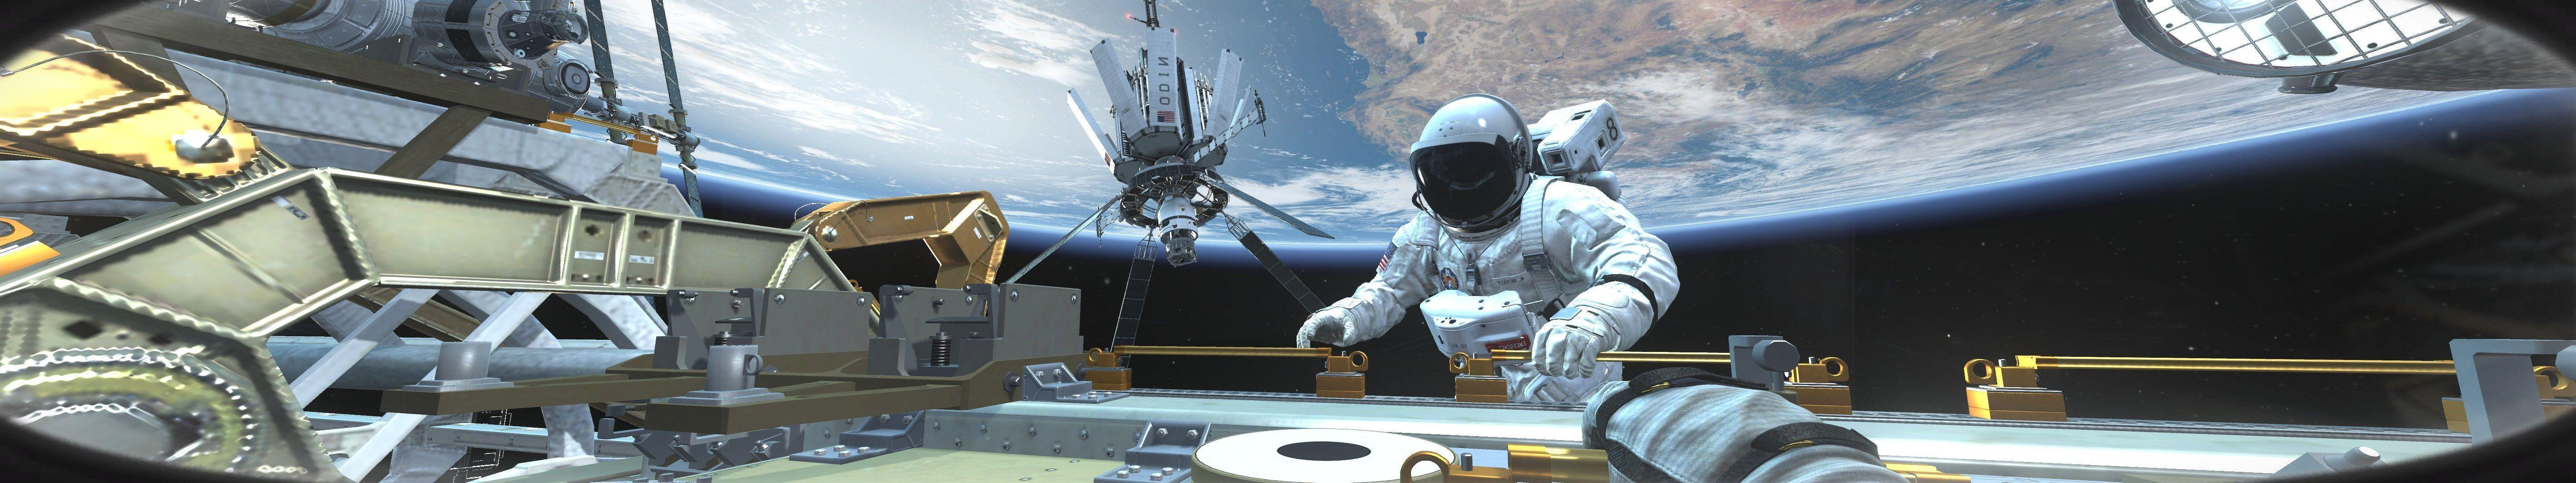 Call Of Duty: Ghosts, Space, Science Fiction Wallpapers HD